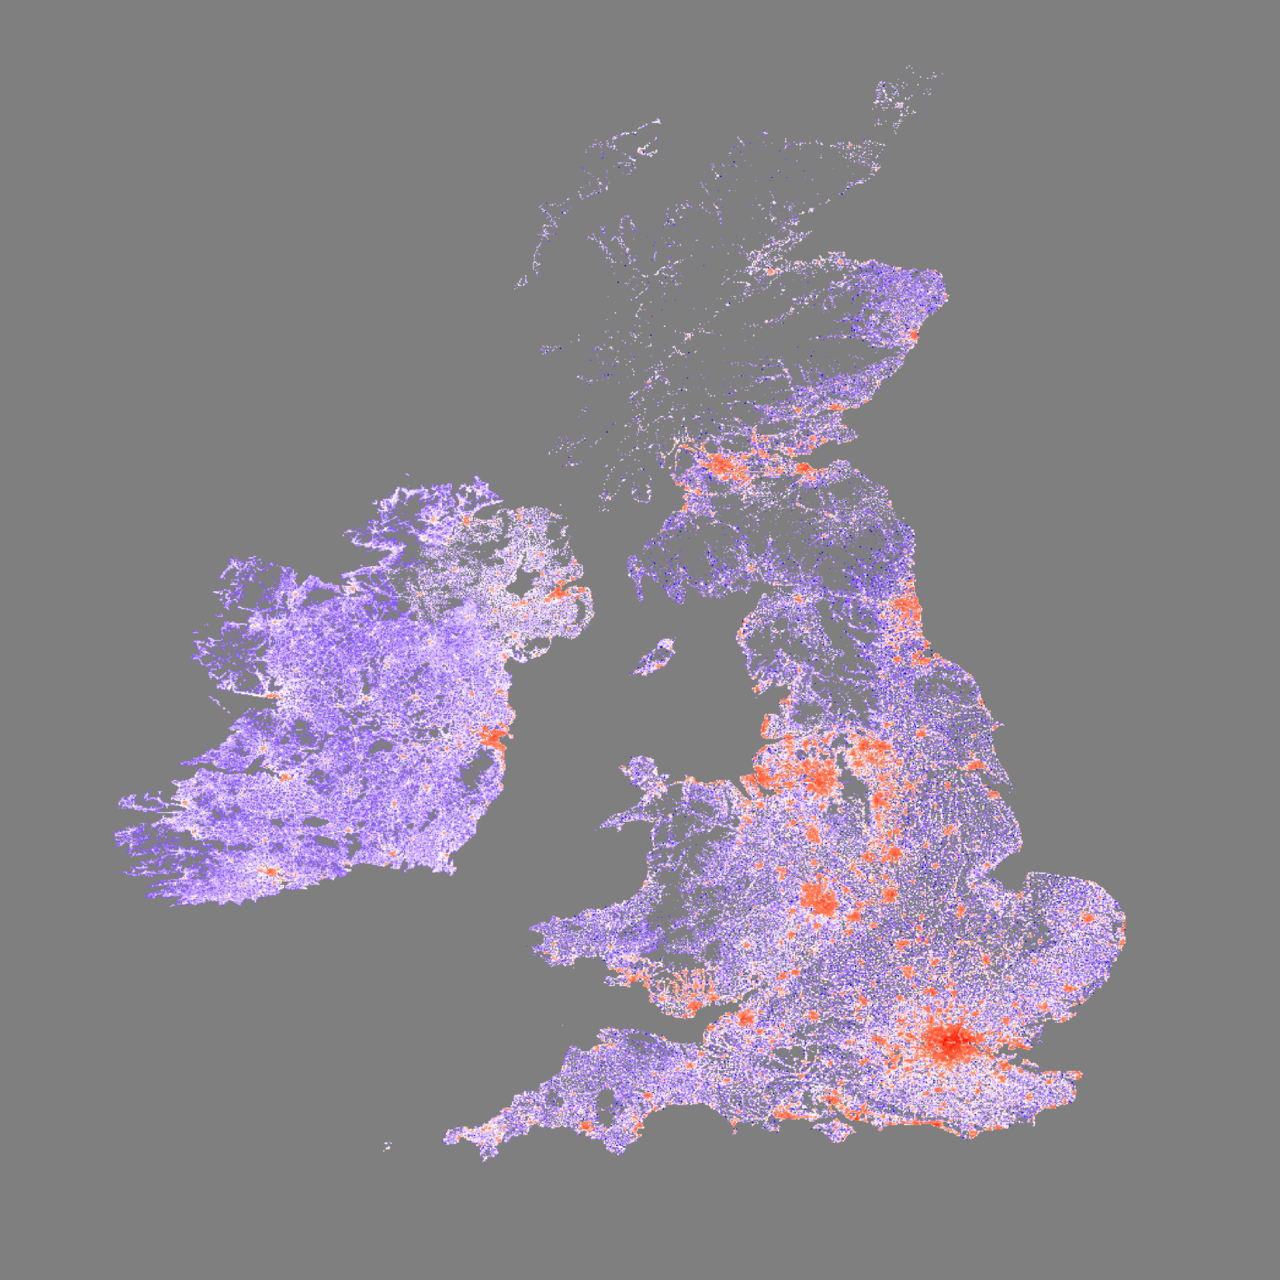 Map of Most of British Isles made by where people live